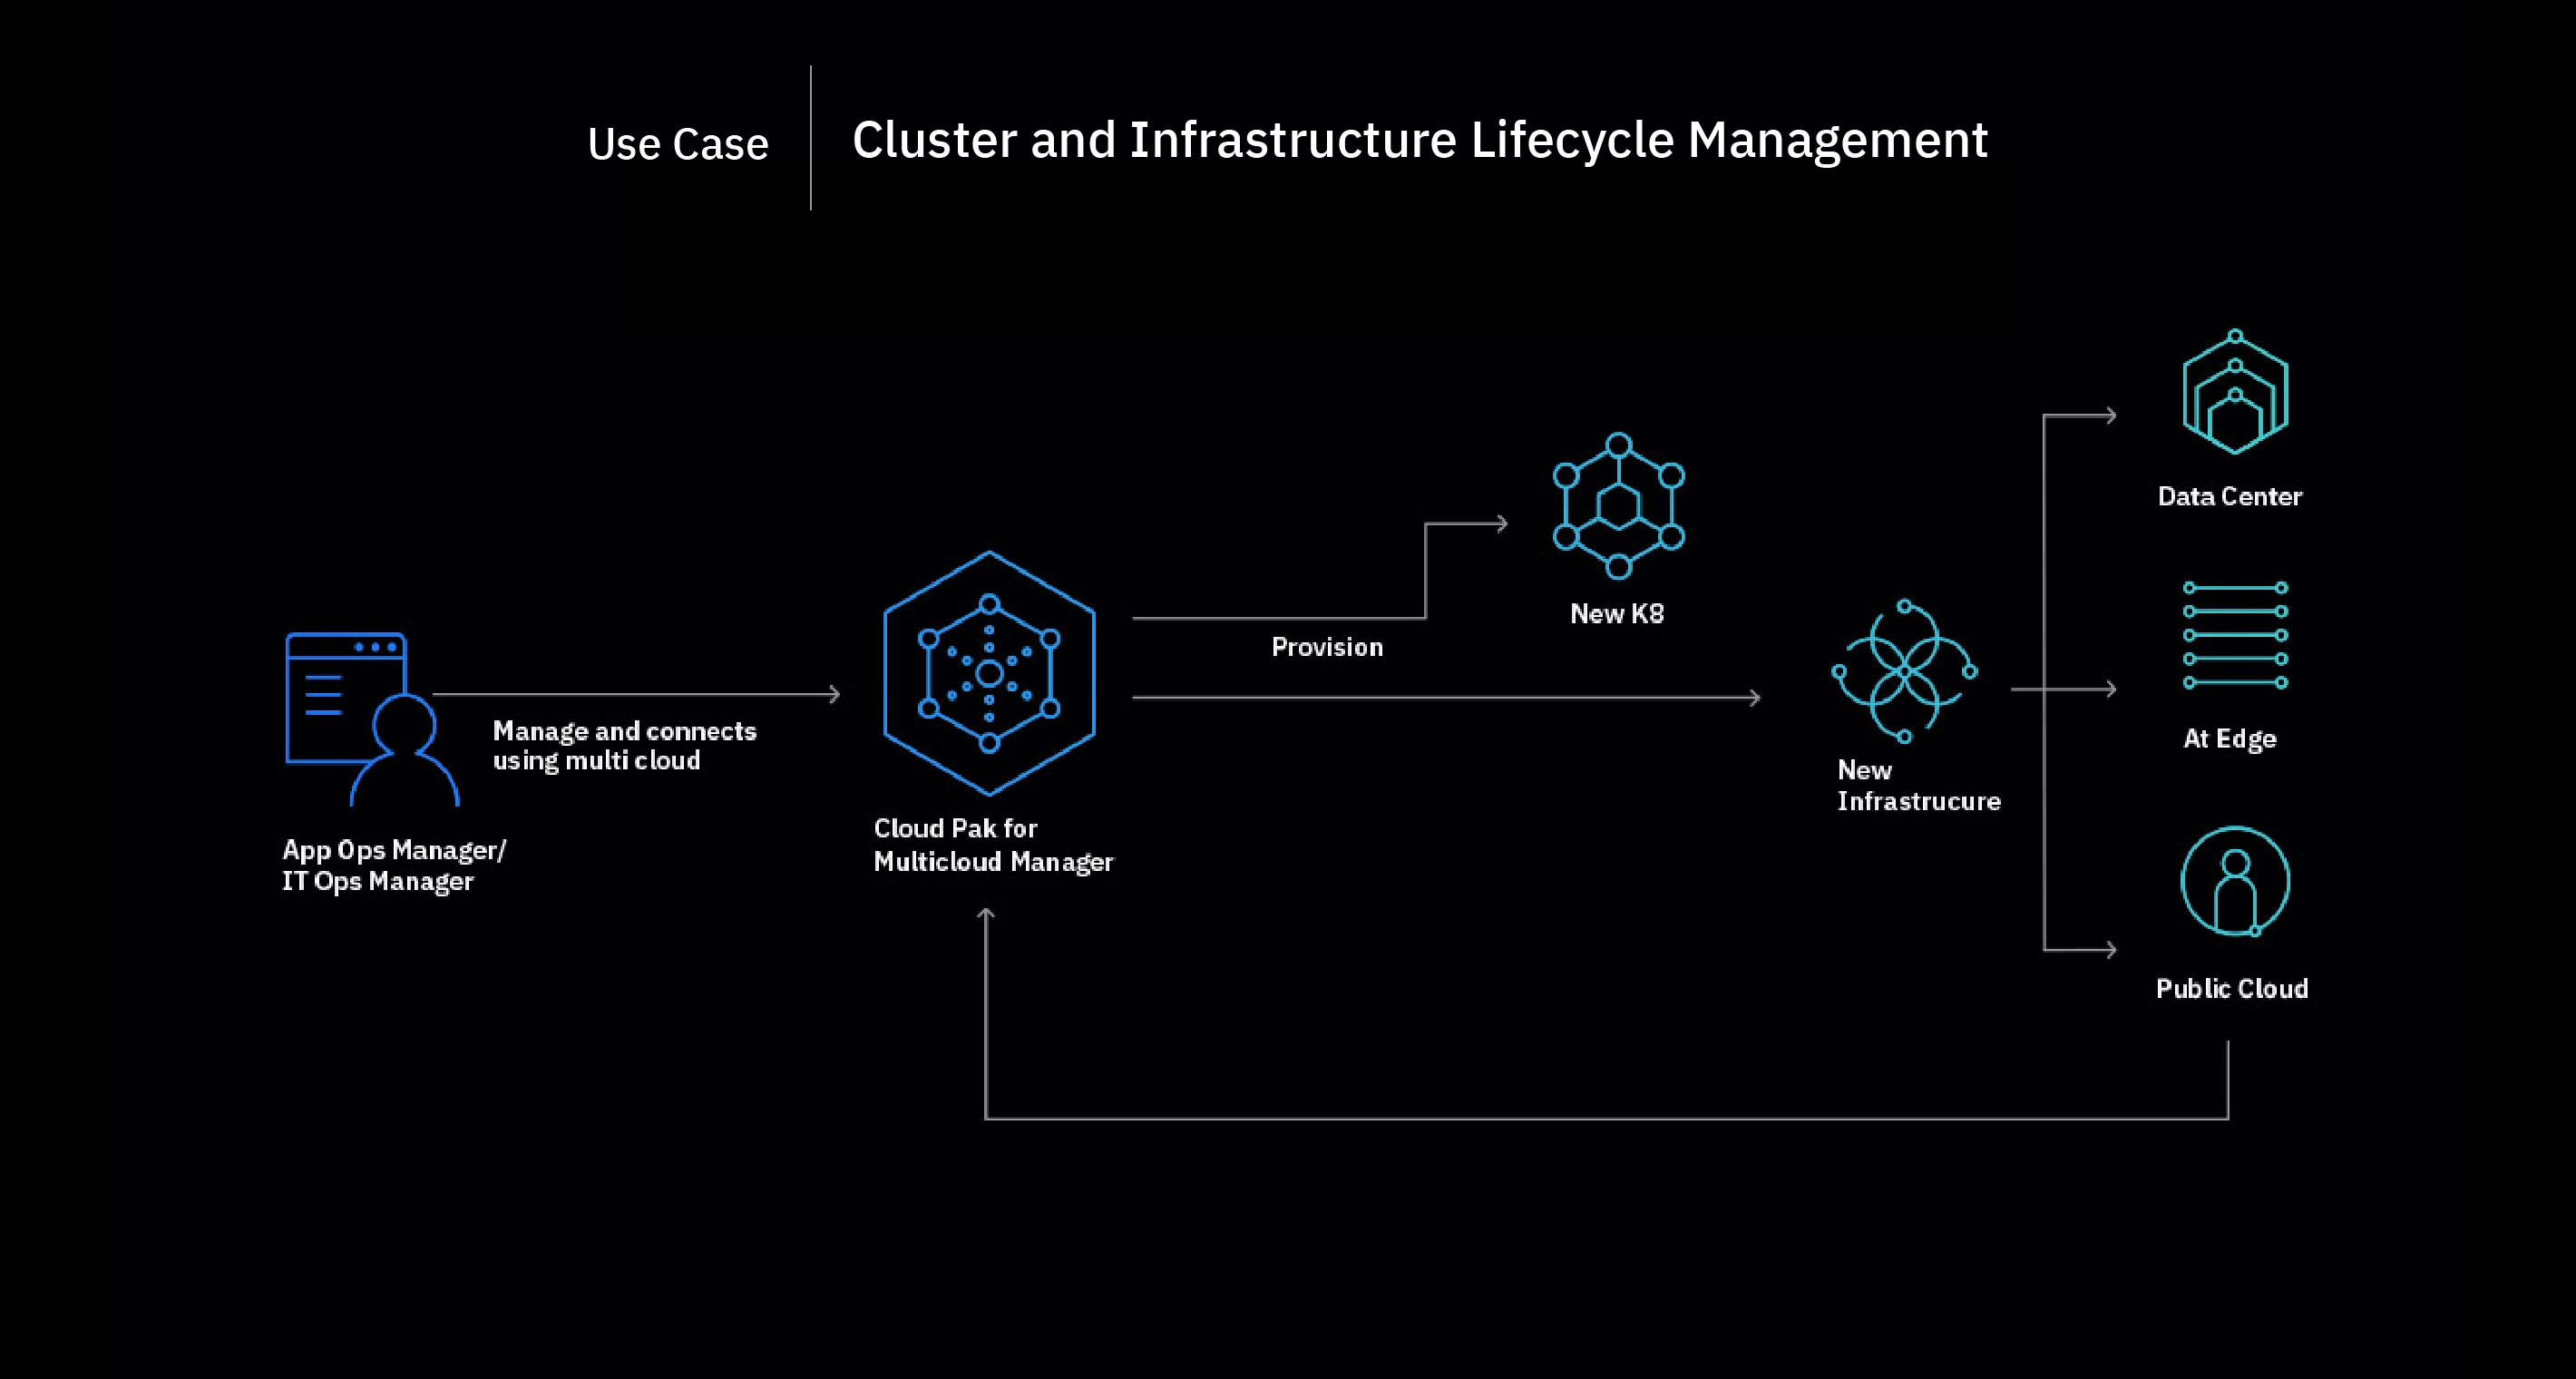 Flowchart showing the cluster and infrastructure lifecycle management process